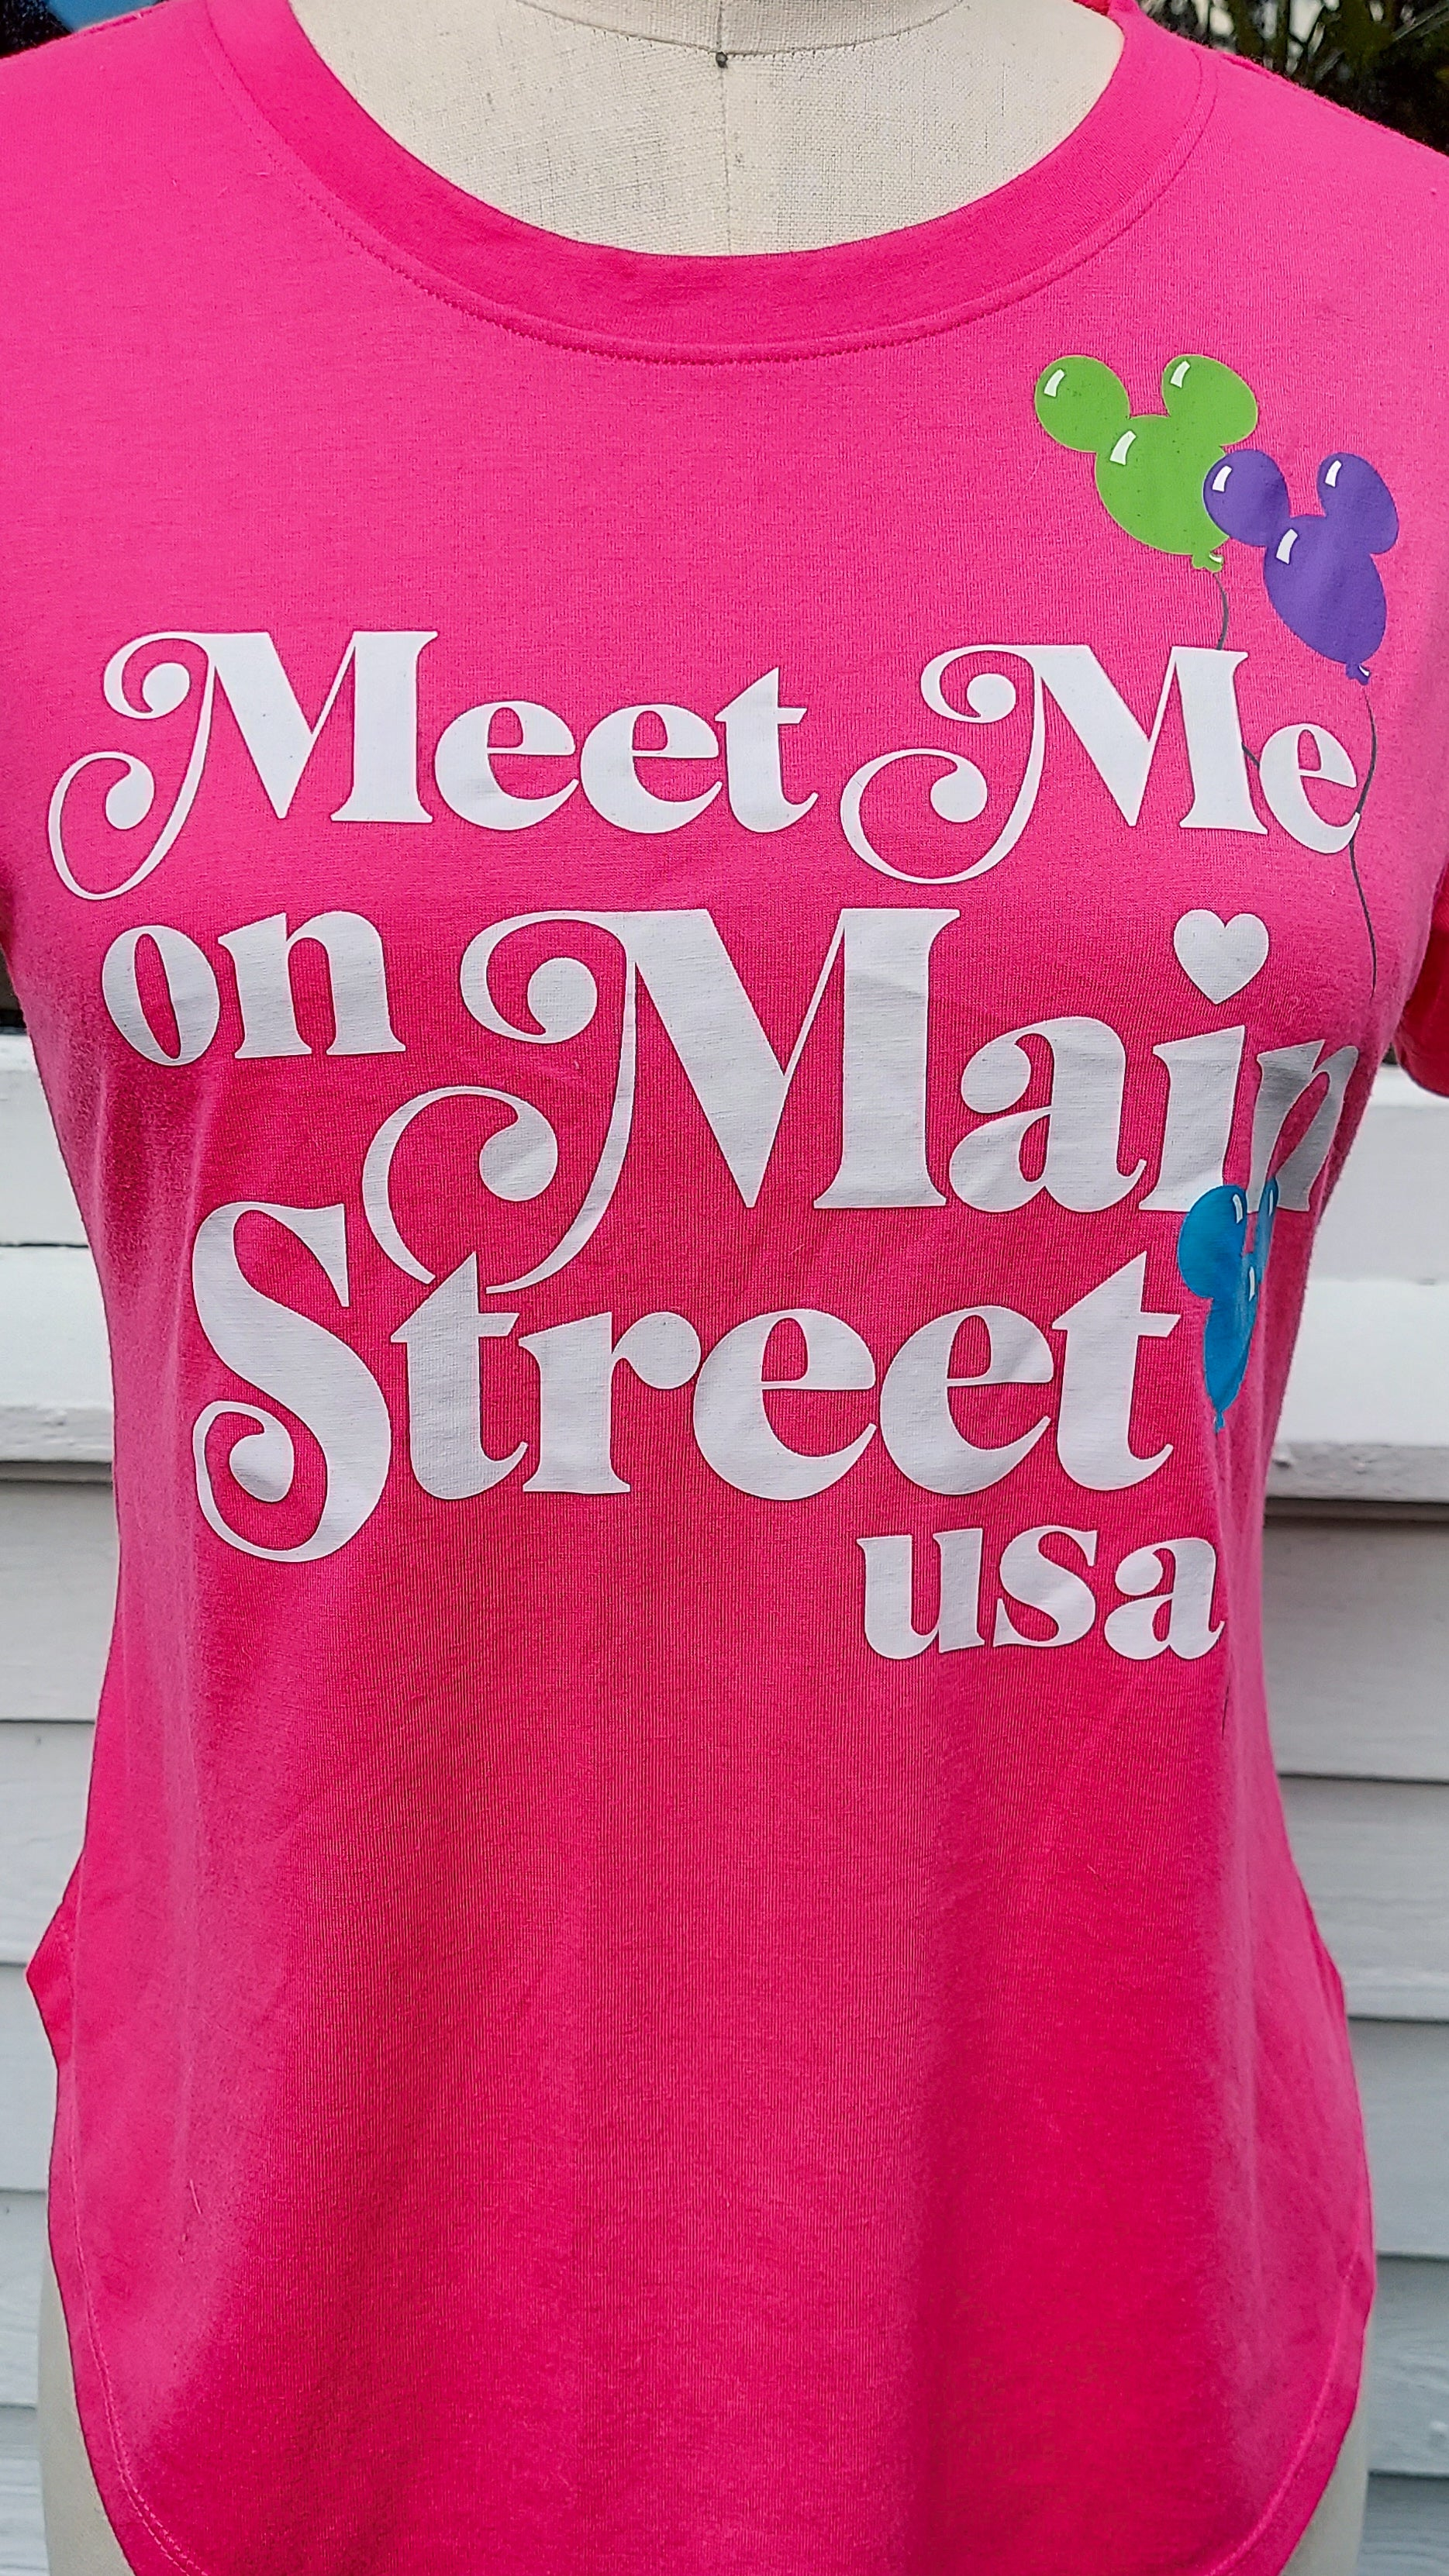 Meet Me on Main Street (Small)